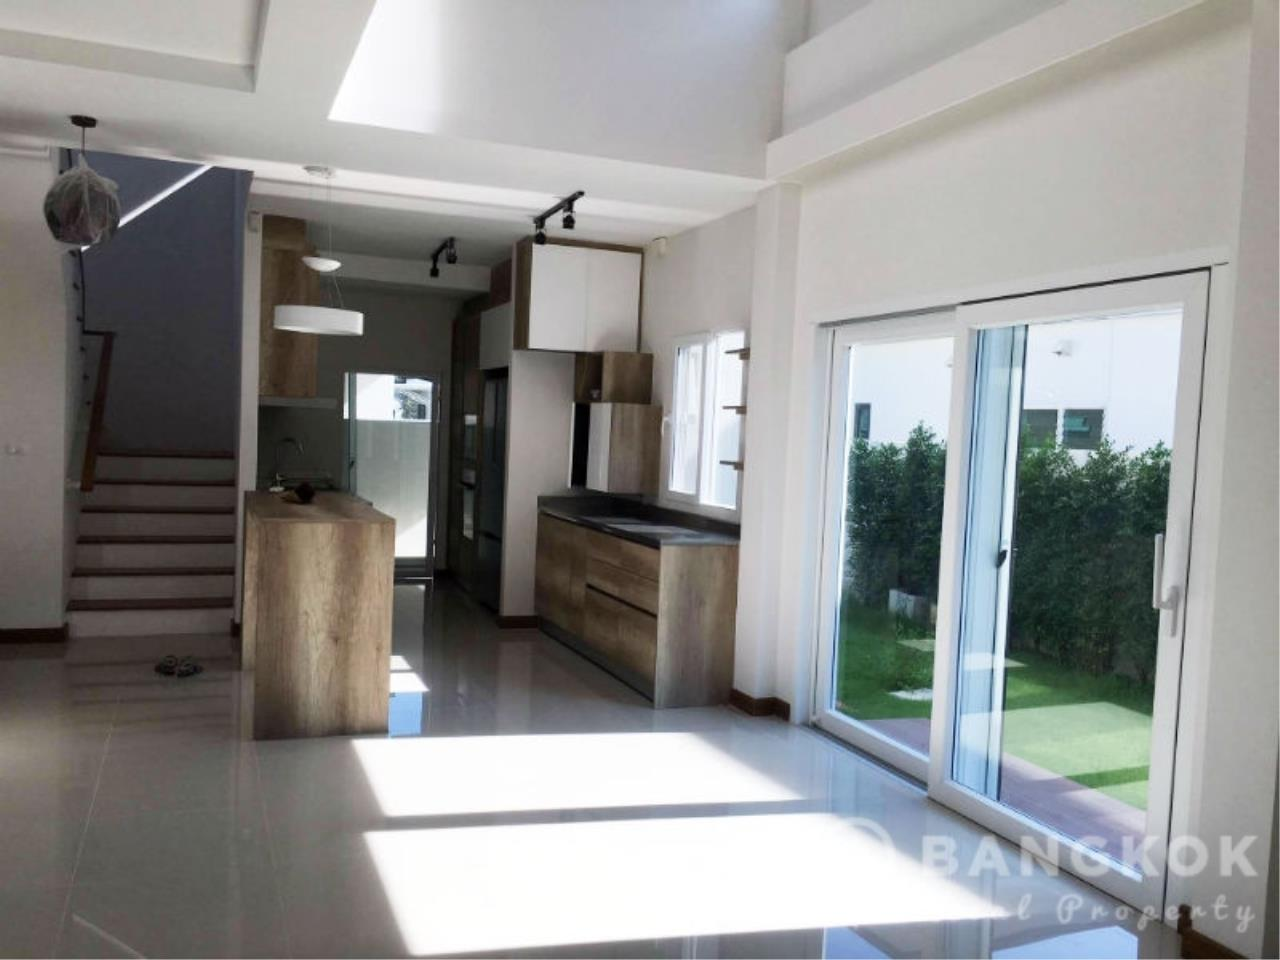 Bangkok Real Property Agency's Brand New Detached 4 Bed 4 Bath House just off Srinakarin Road 3